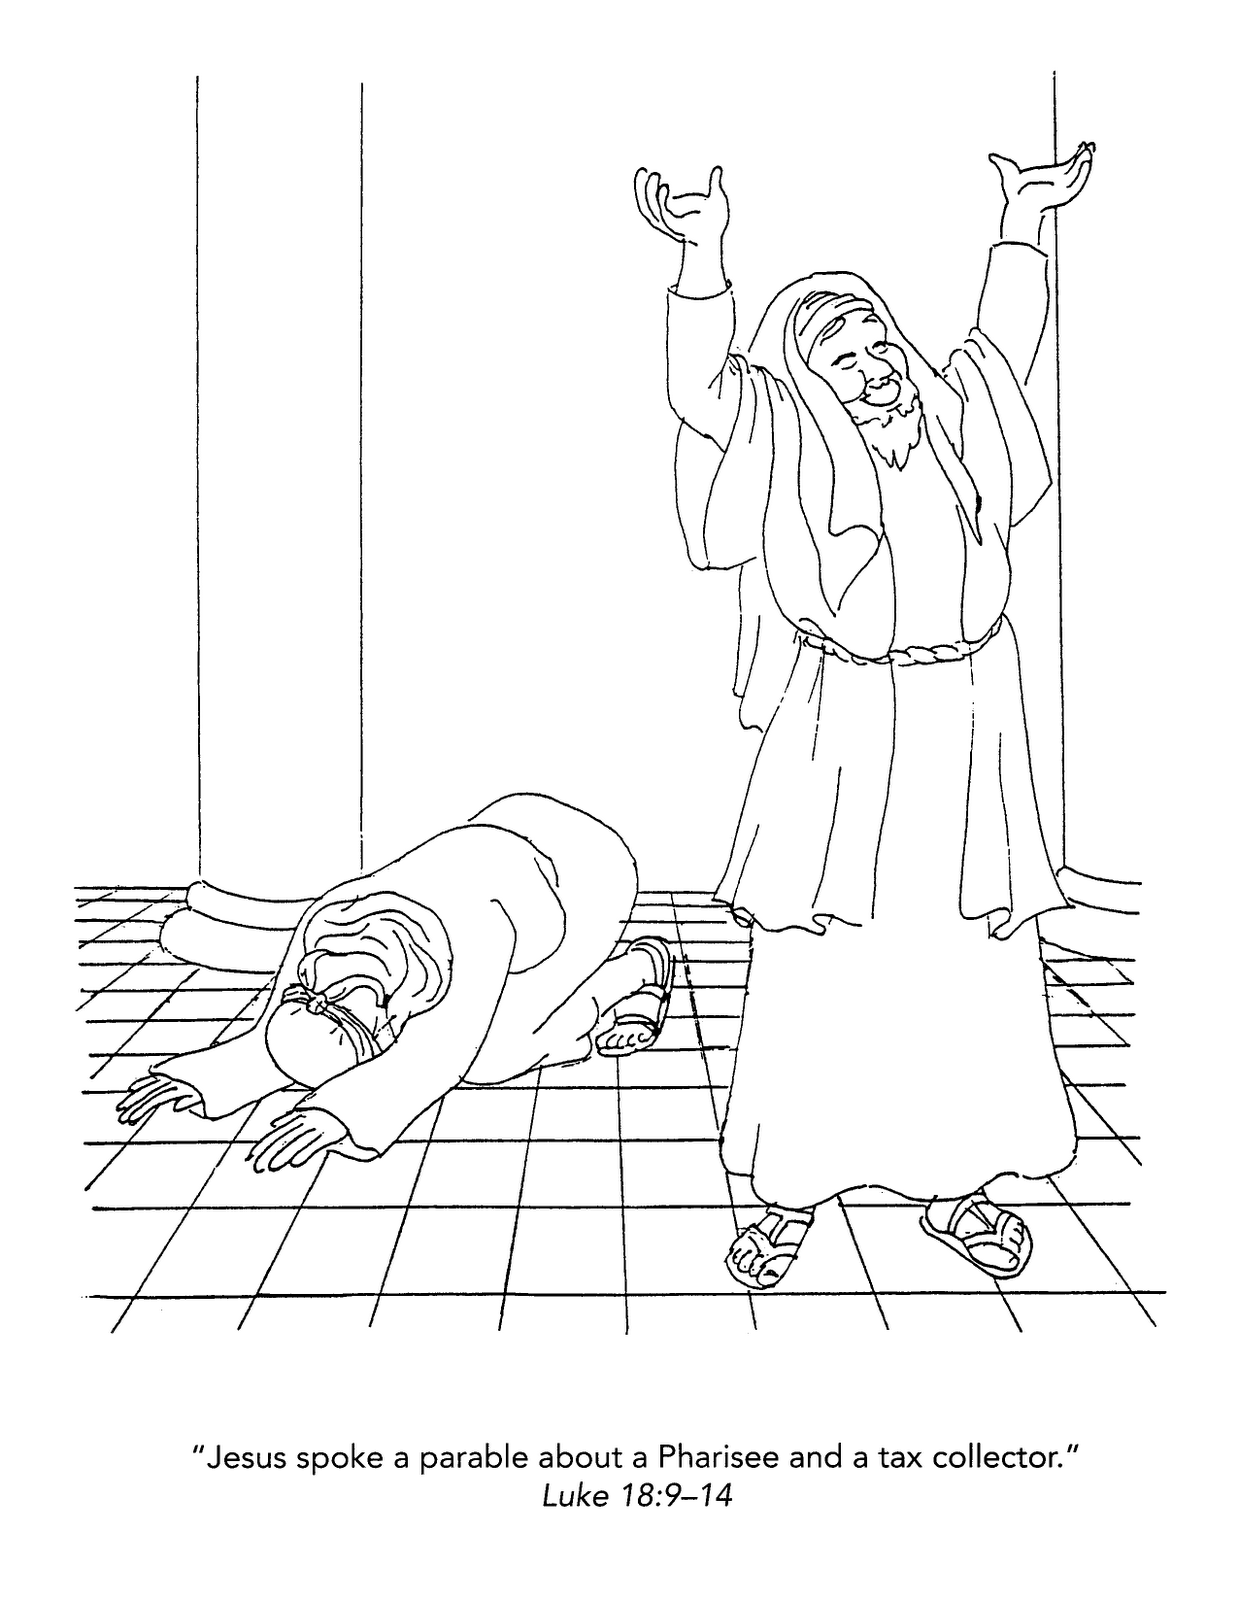 the coloring sheet i chose for this week is below it so clearly depicts the postures of pride and humility